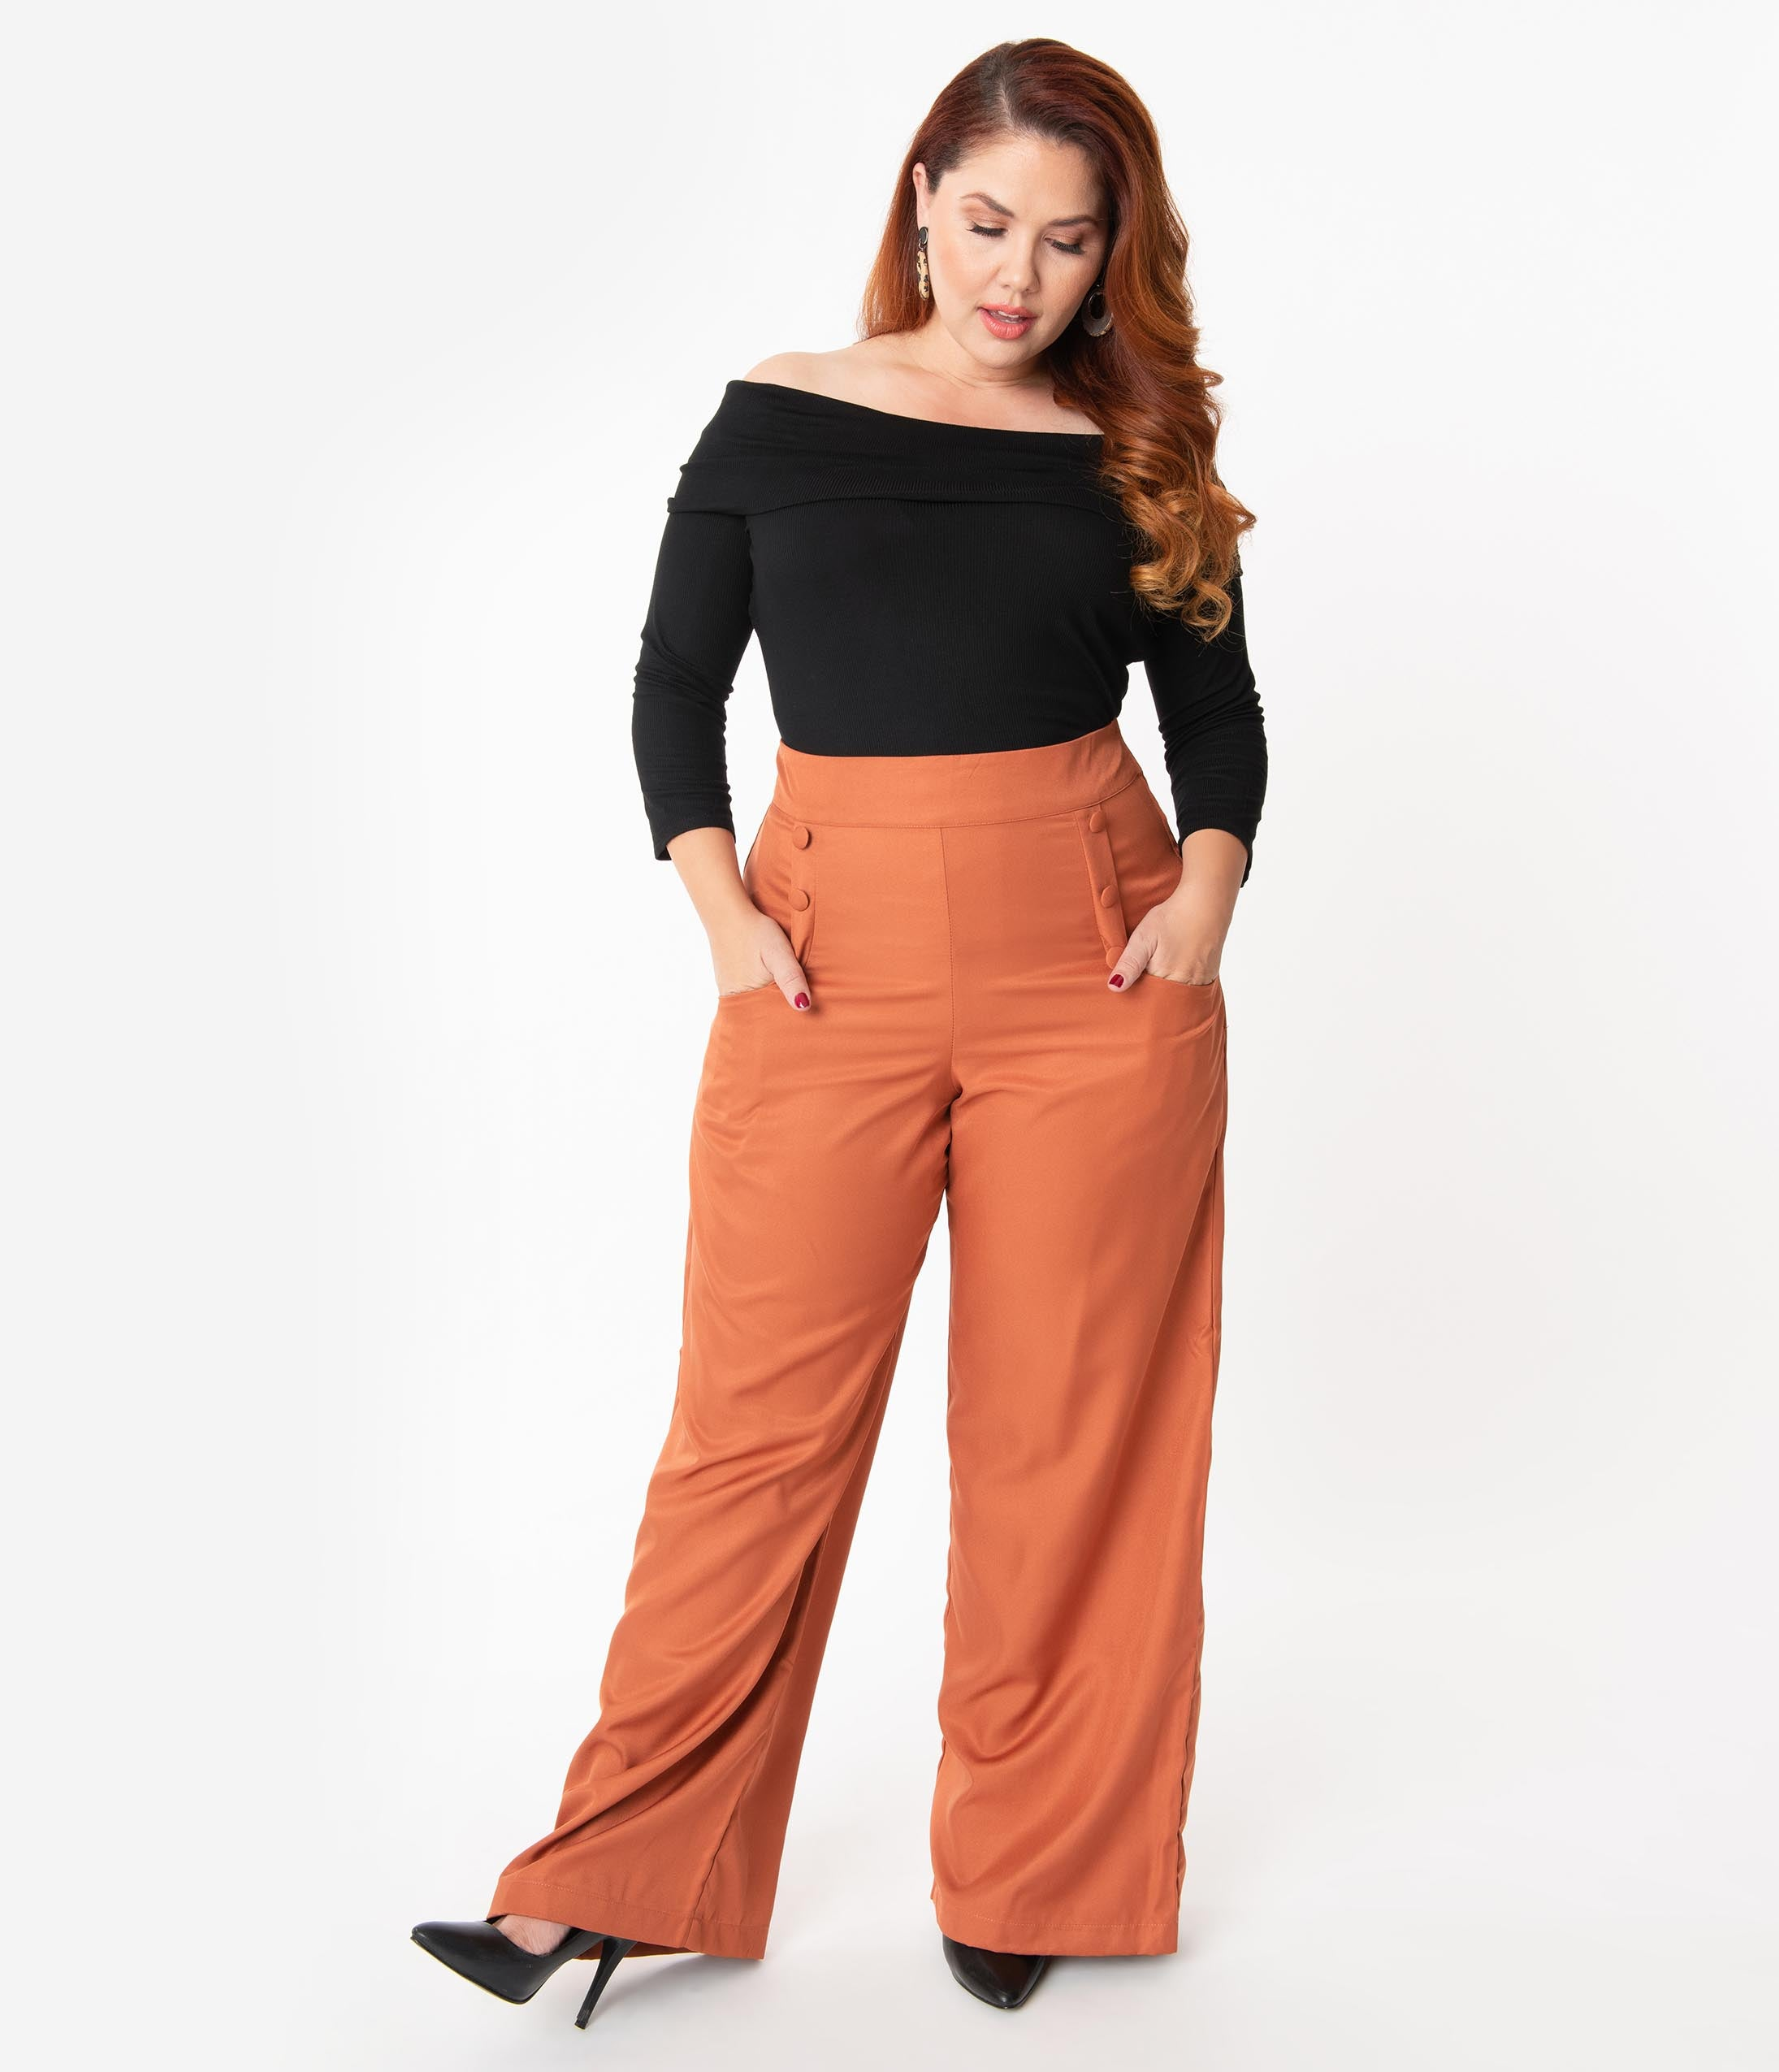 1940s Plus Size Dresses | Swing Dress, Tea Dress Unique Vintage Plus Size 1940S Rust High Waist Ginger Pants $64.00 AT vintagedancer.com